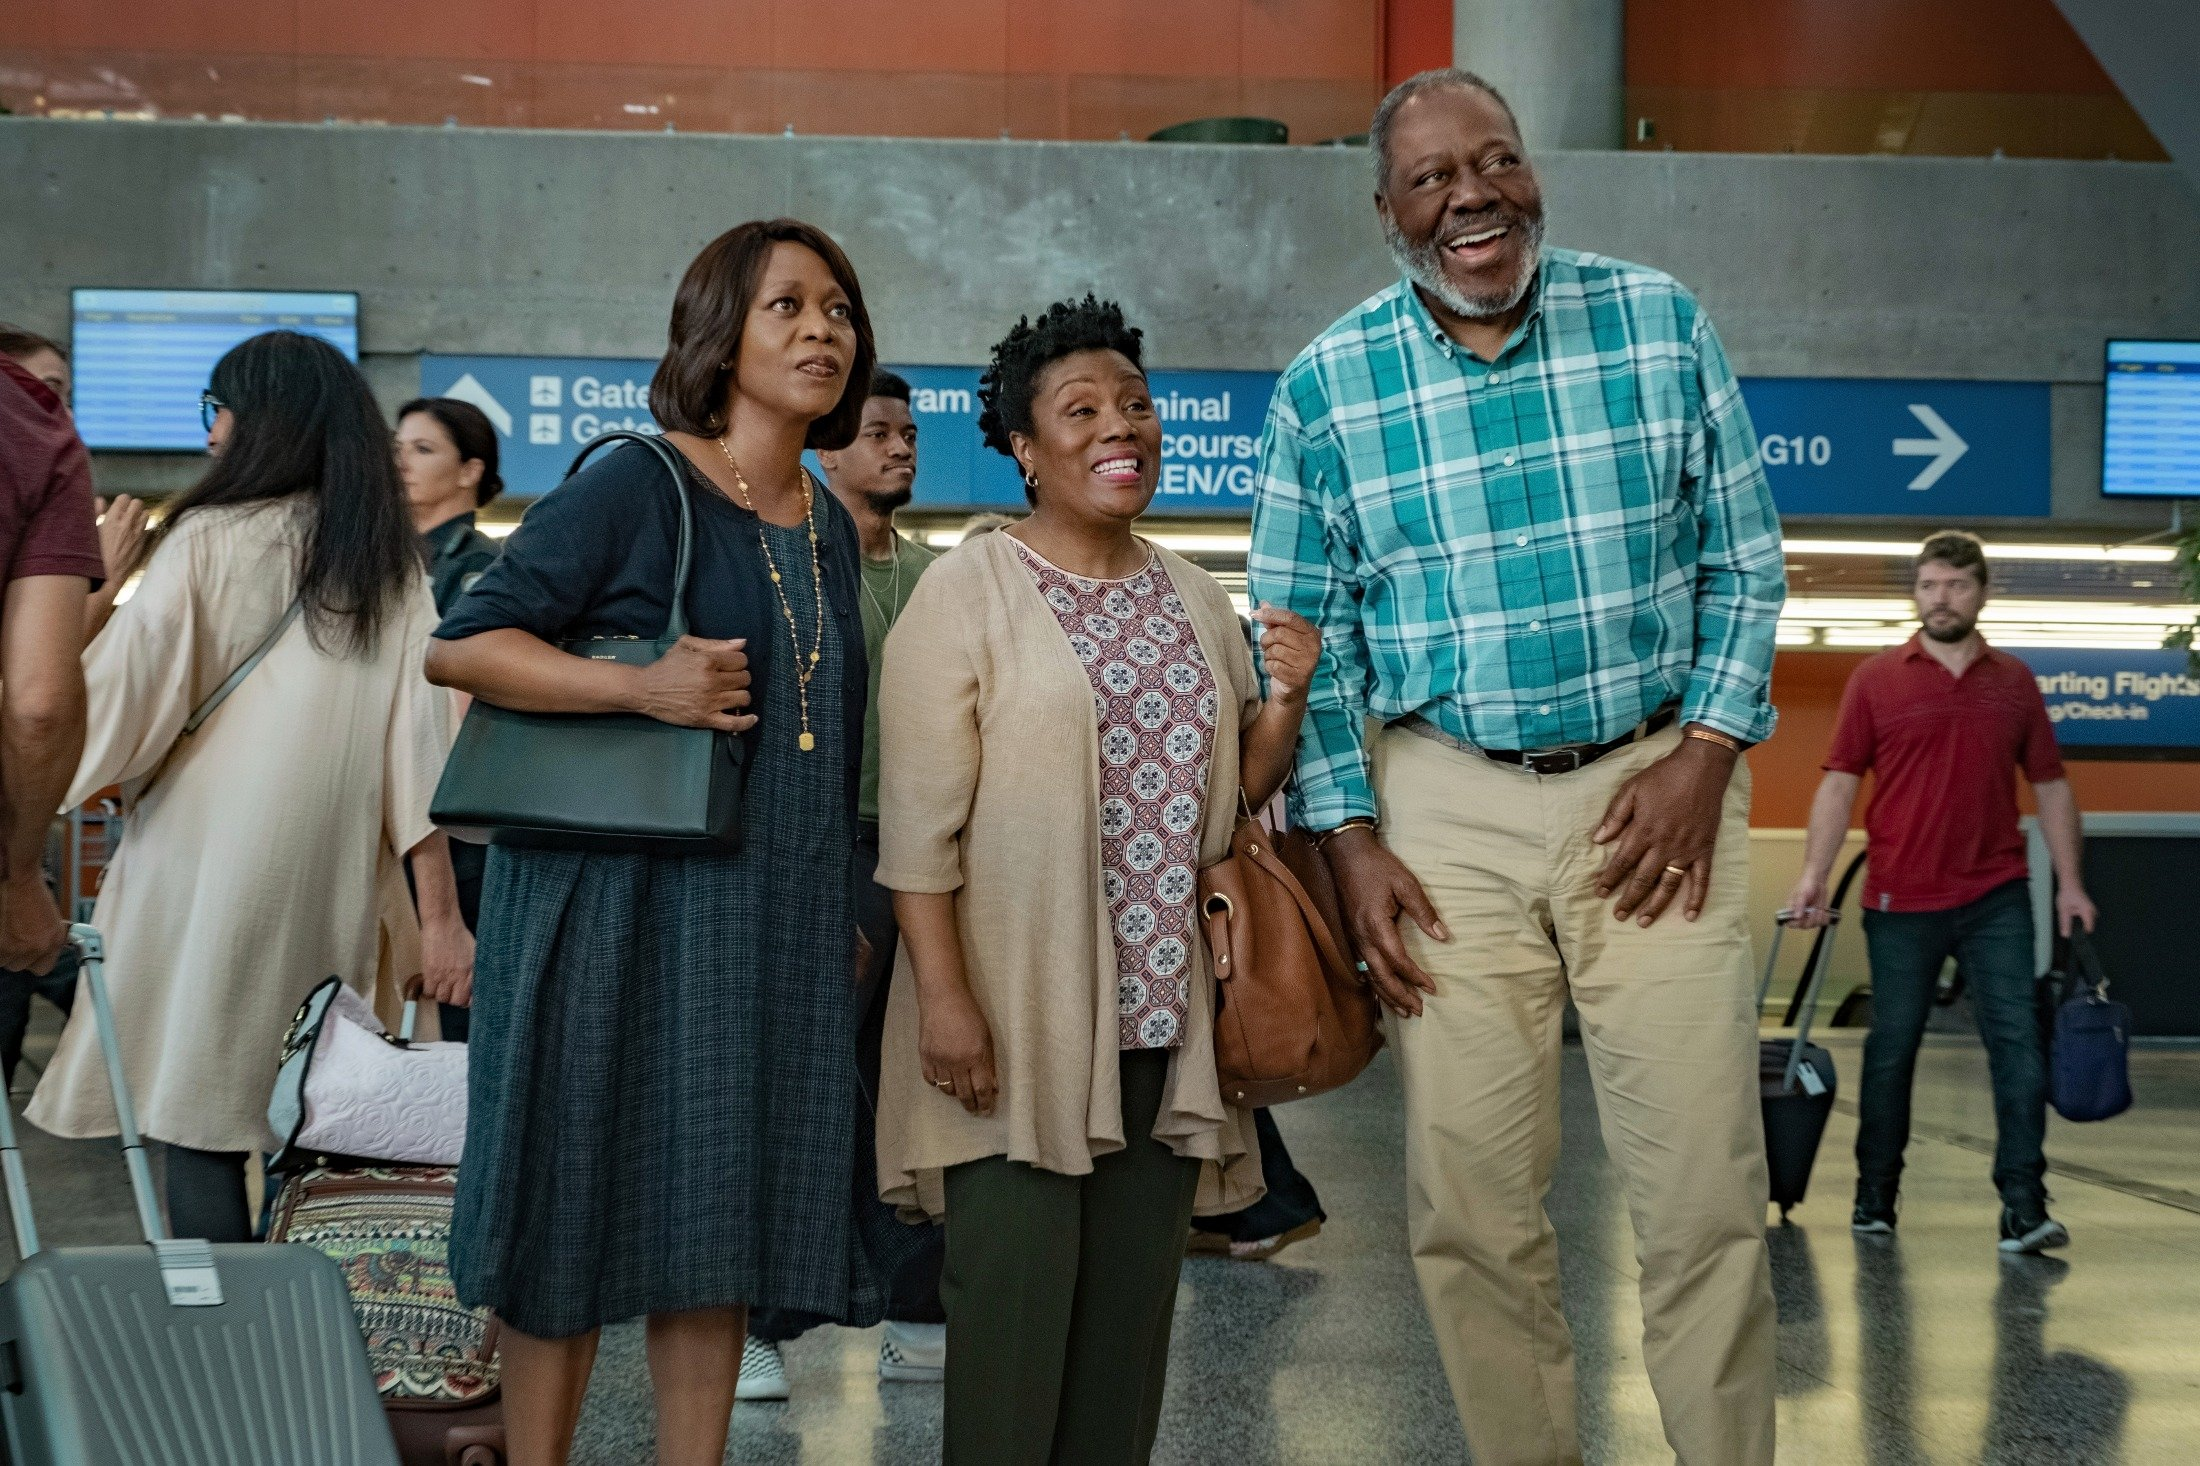 Alfre Woodard (L), Thedra Porter (C) and Frankie Faison wait for someone at an airport, in a scene from the movie 'Fatherhood.' (Netflix via AP)